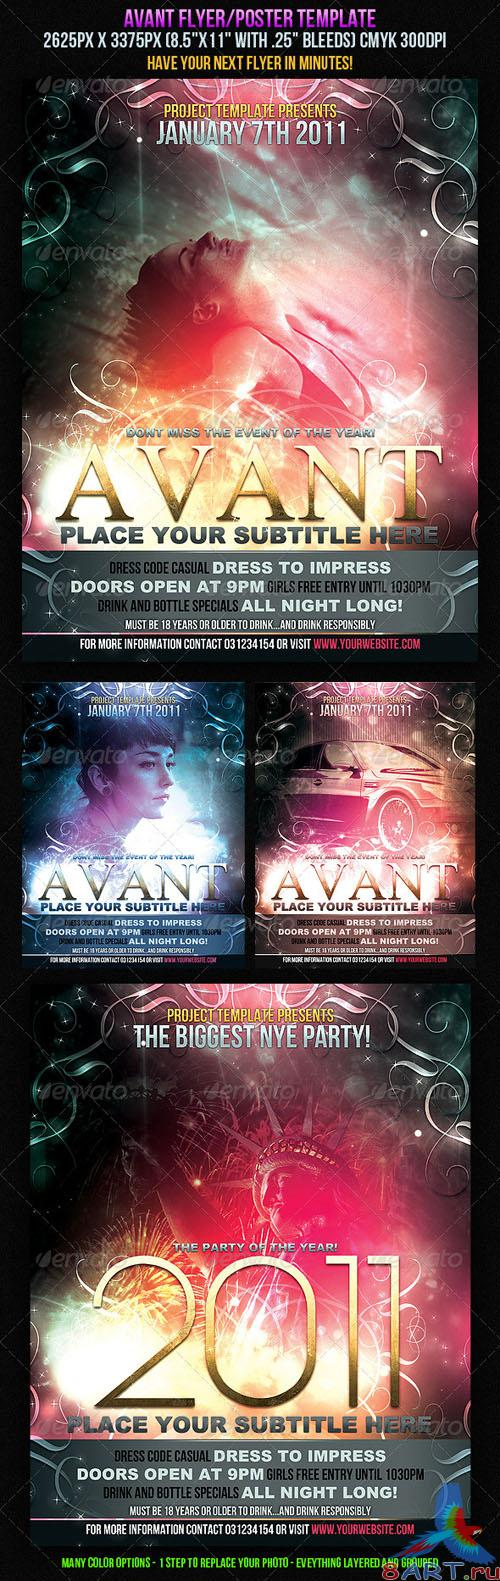 Avant Flyer/Poster Template - GraphicRiver